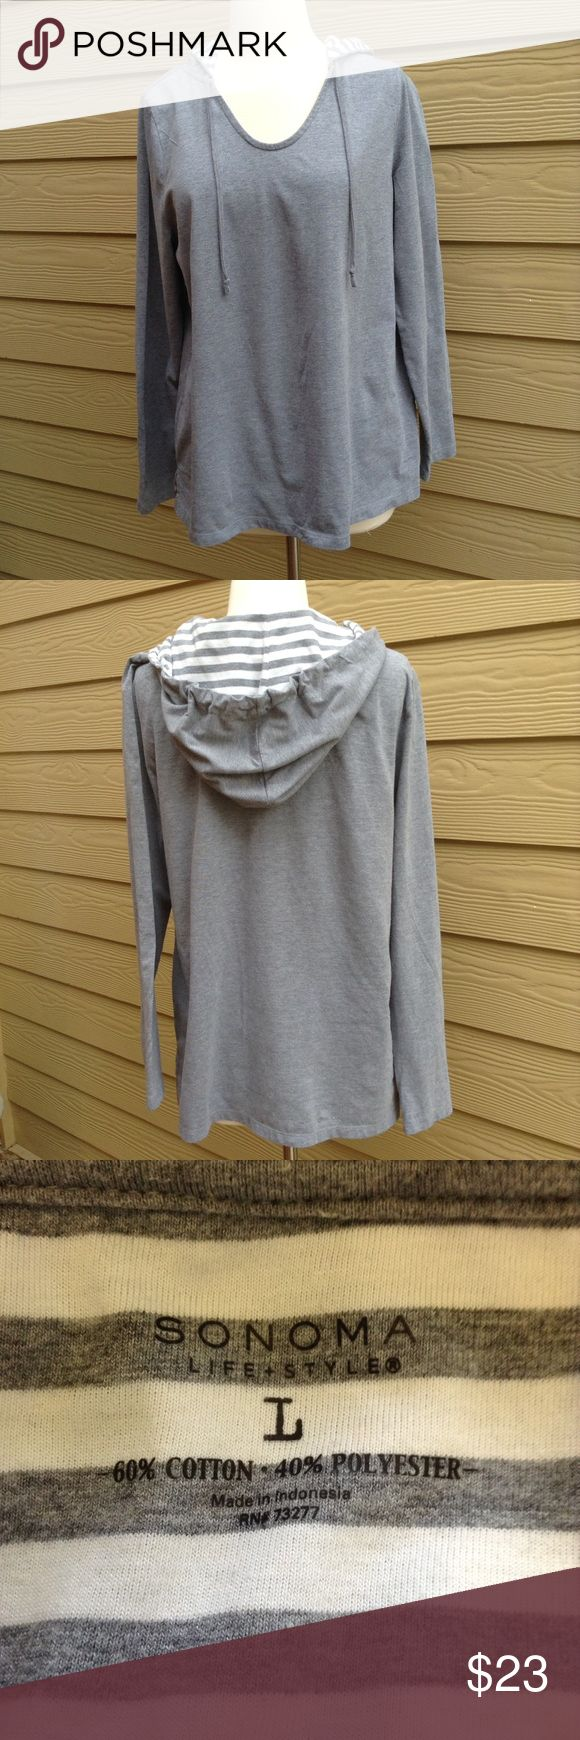 """Sonoma Gray Hoodie Bust is 42"""" and length is 26"""",  great condition Sonoma Tops"""